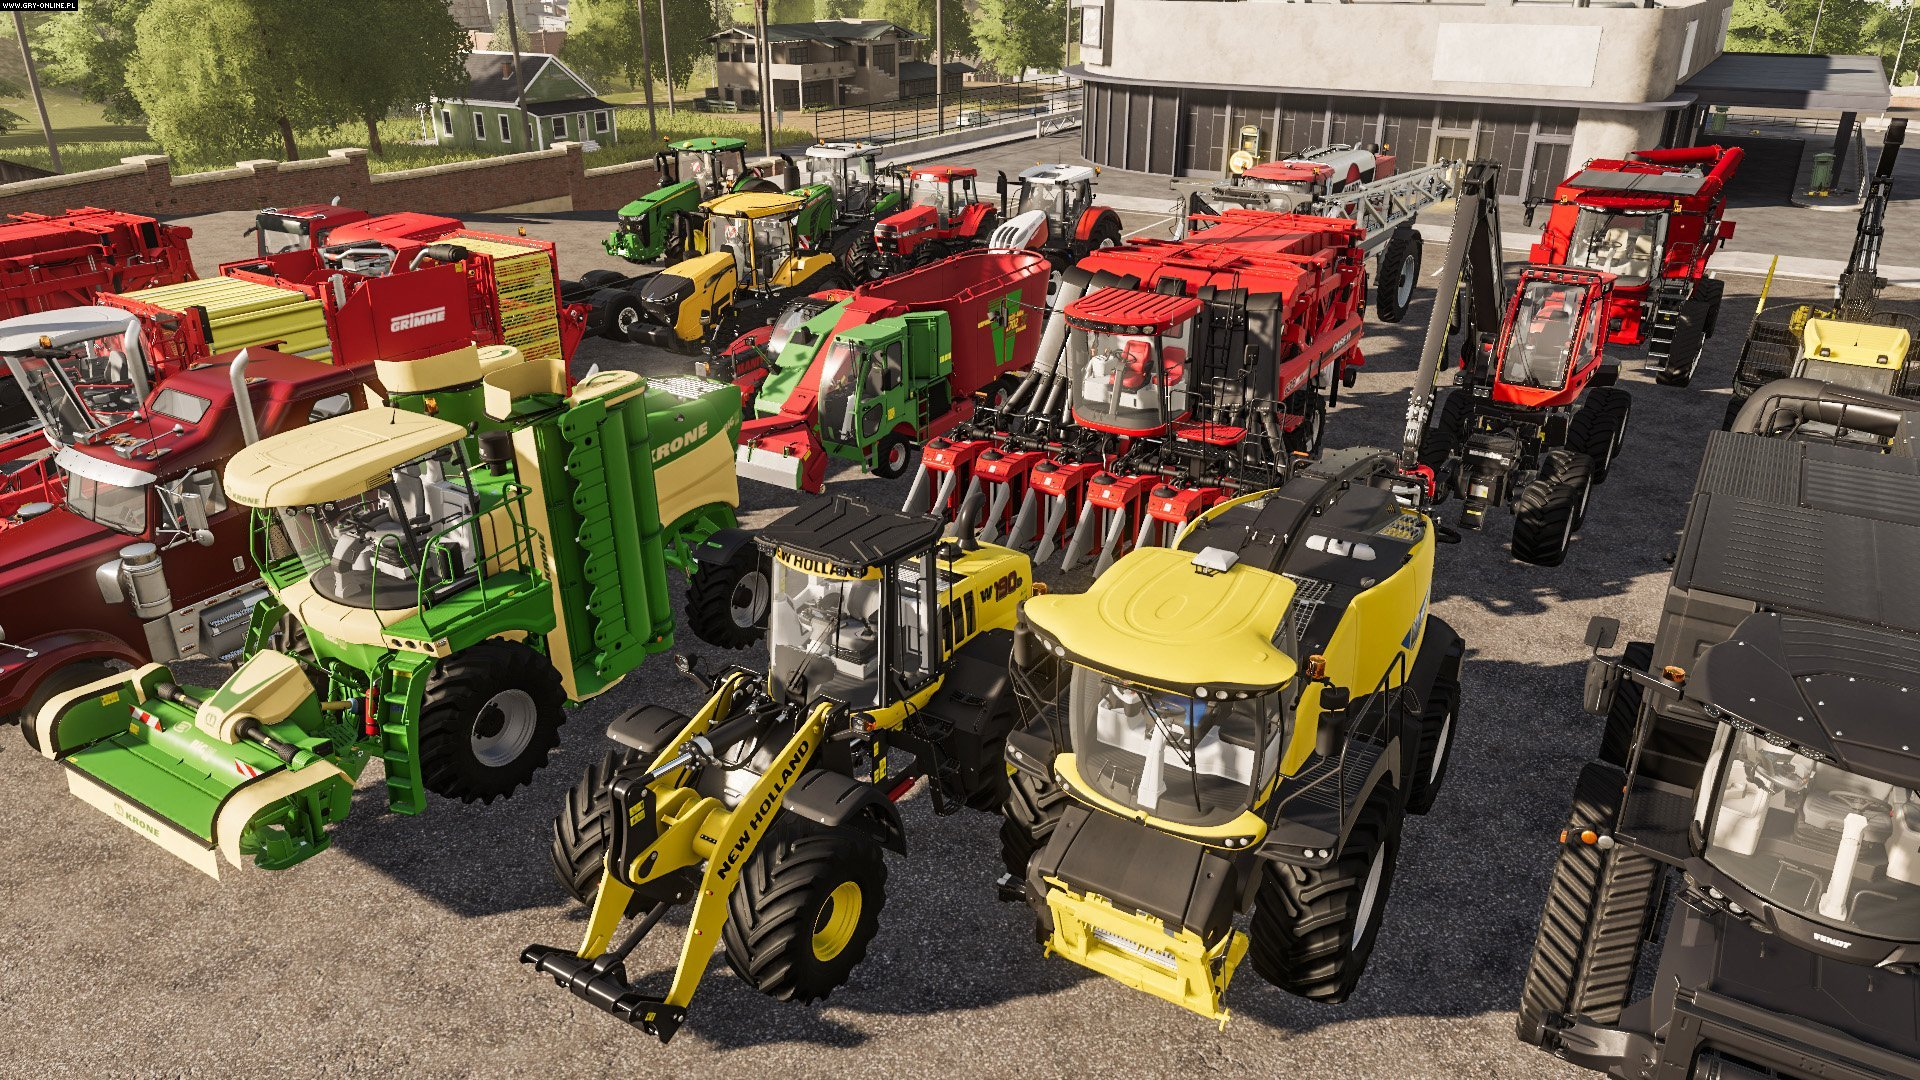 Farming Simulator 19 PC, PS4, XONE Games Image 4/11, GIANTS Software, Focus Home Interactive